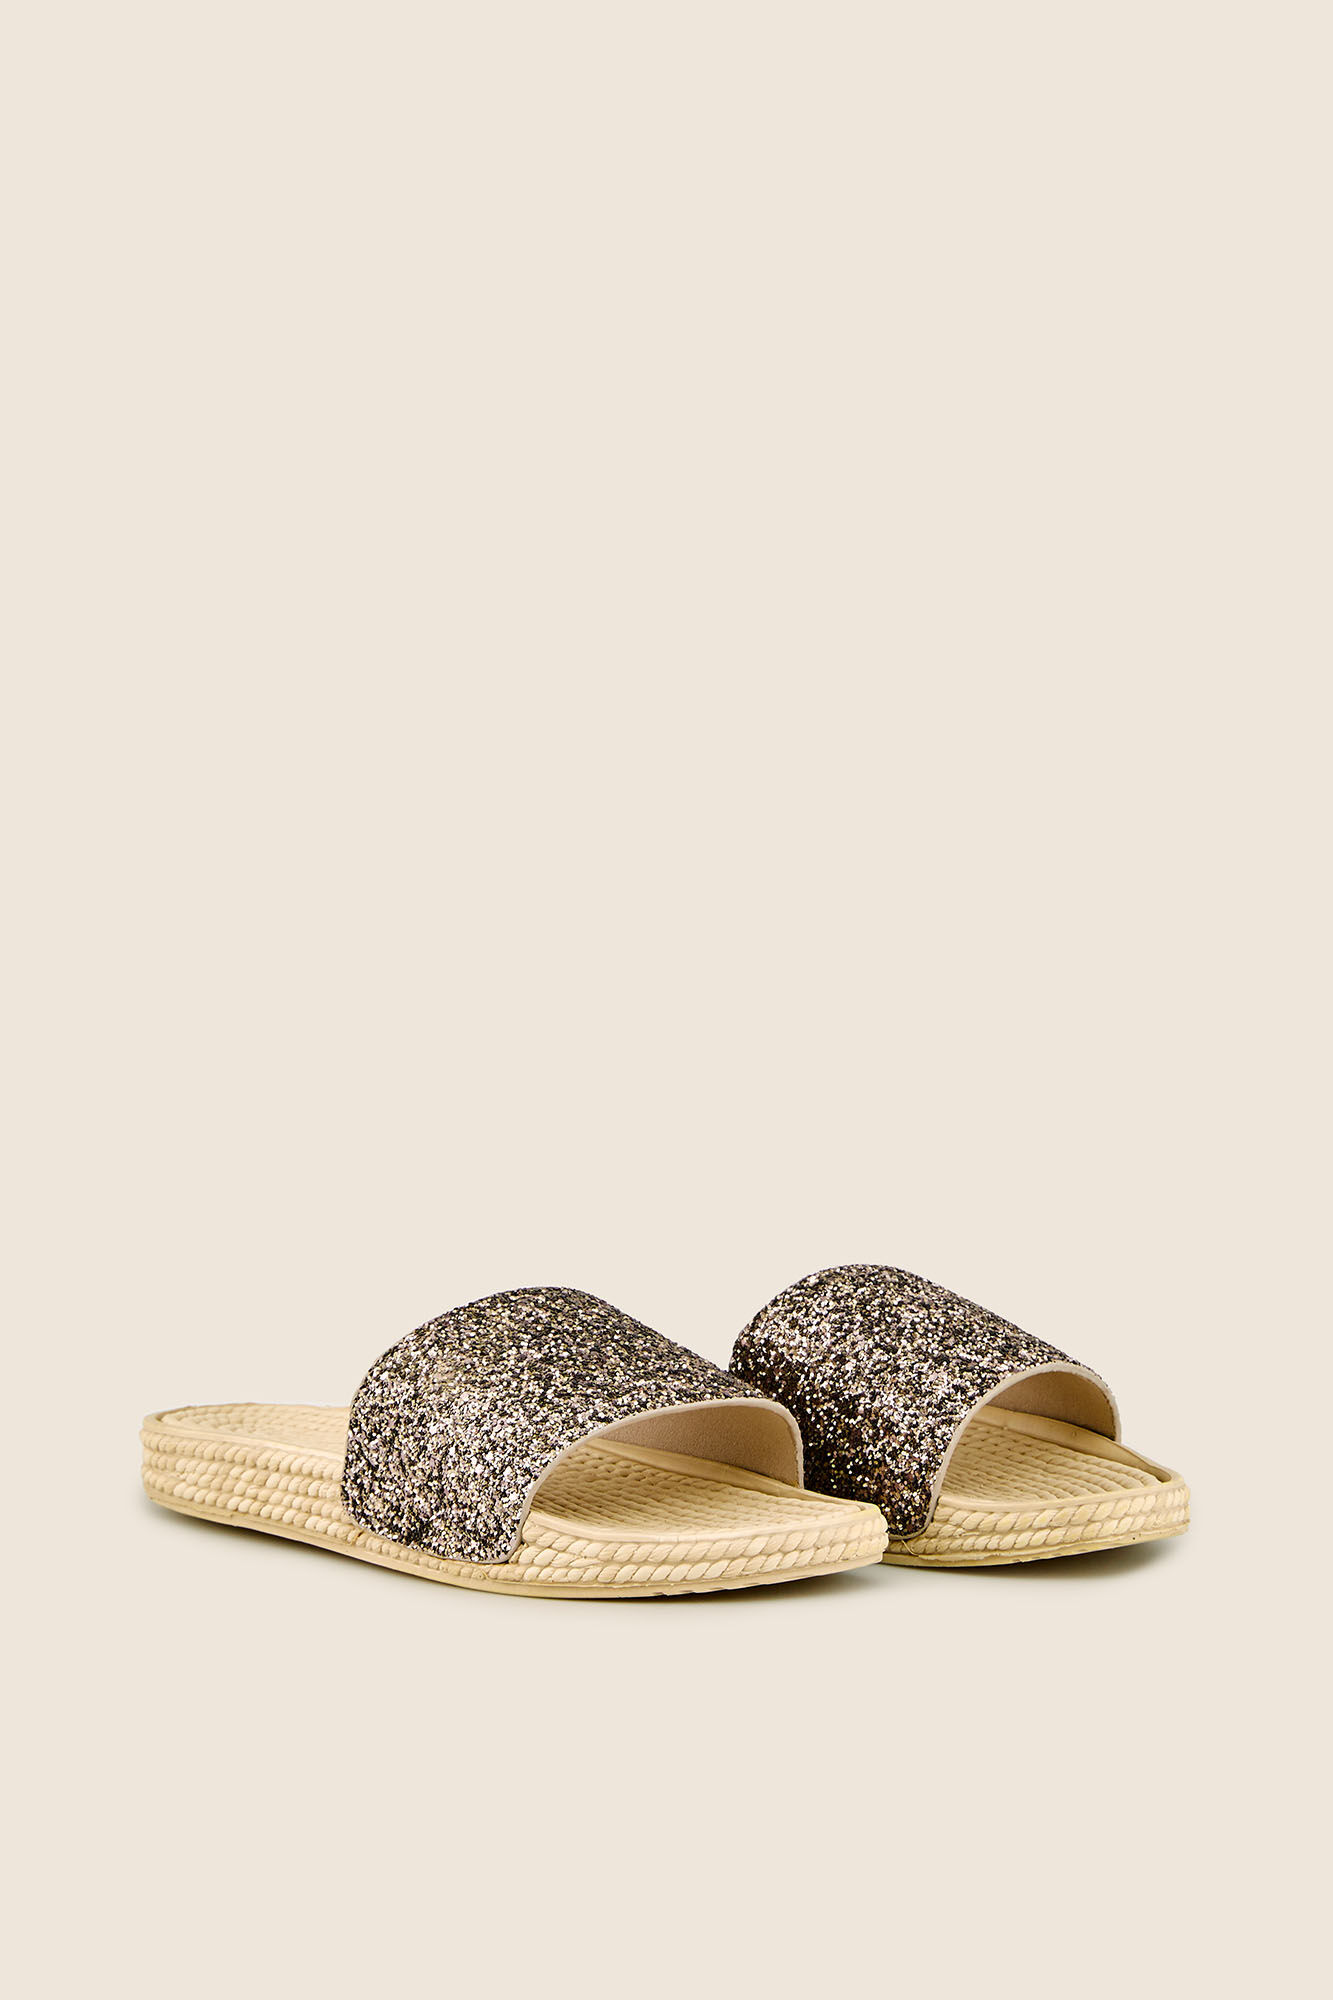 Open sparkly sandals | Accessories | Women'secret